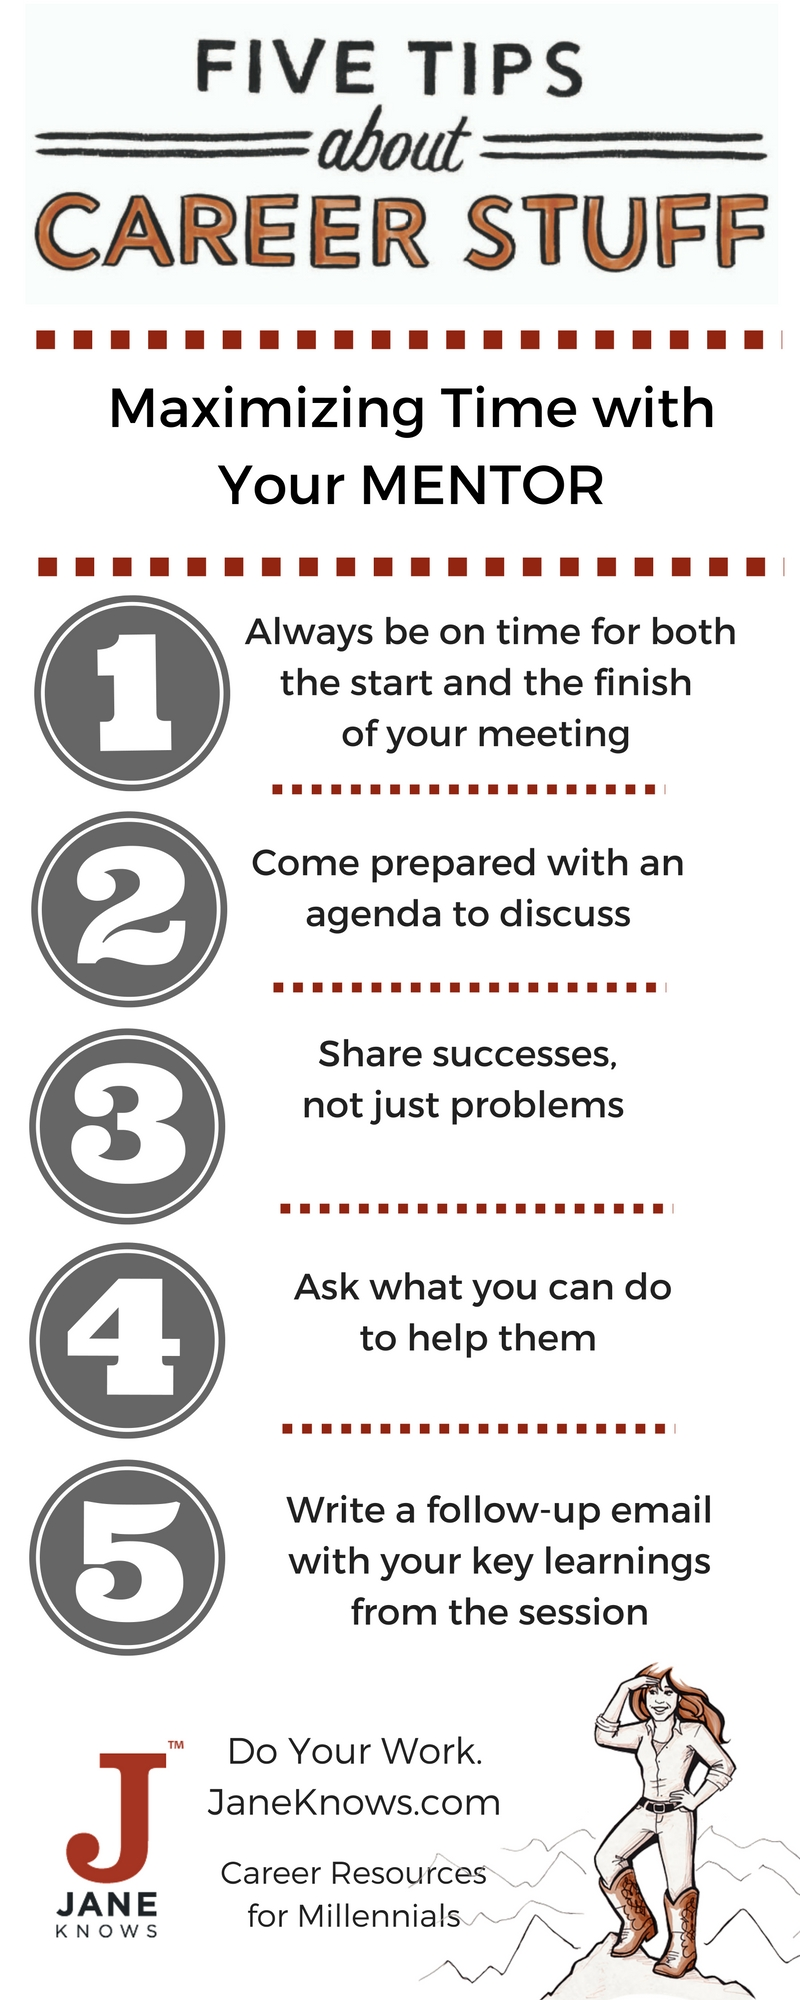 Maximizing Time with Your MENTOR - Infographic